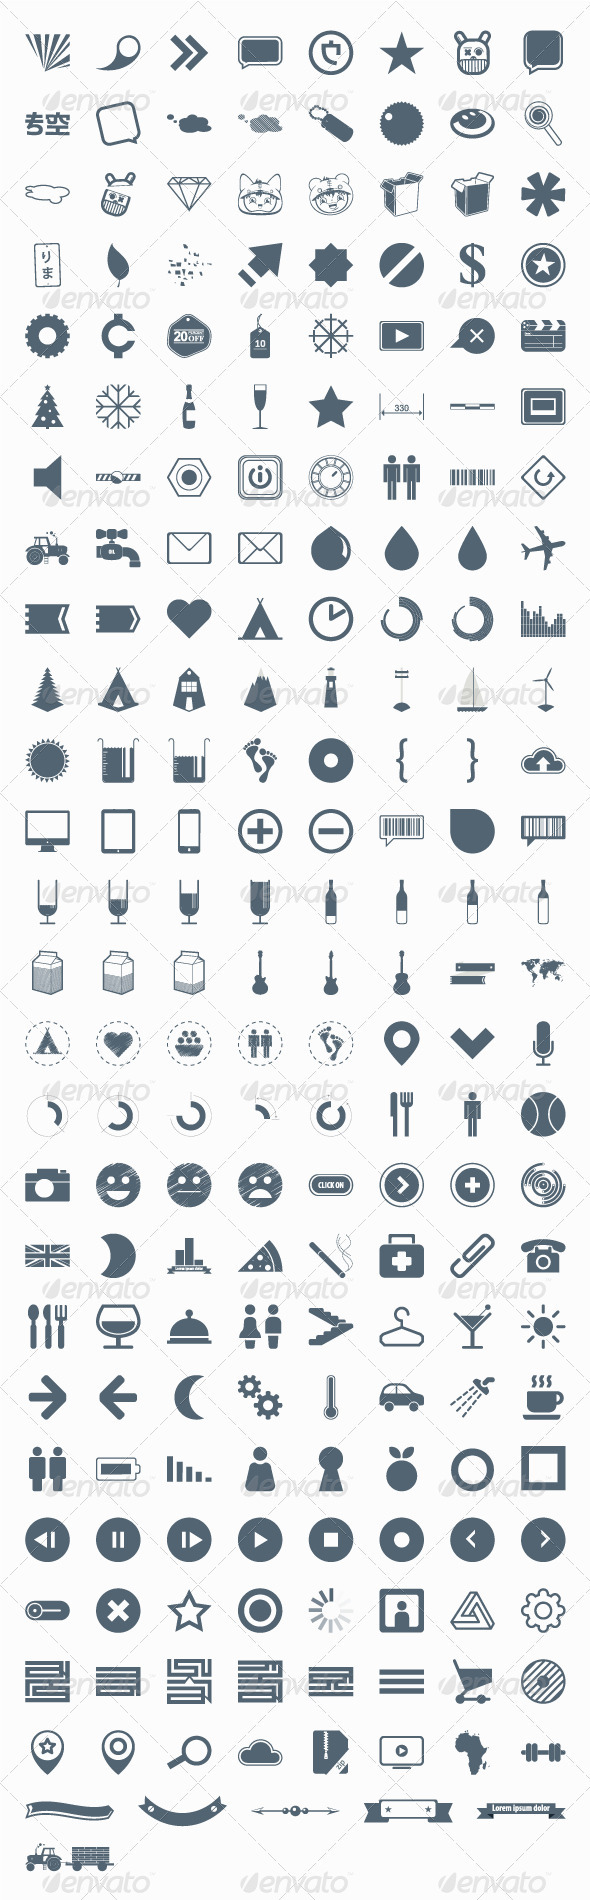 206 vector icons, signs, symbols and pictograms  - Miscellaneous Vectors